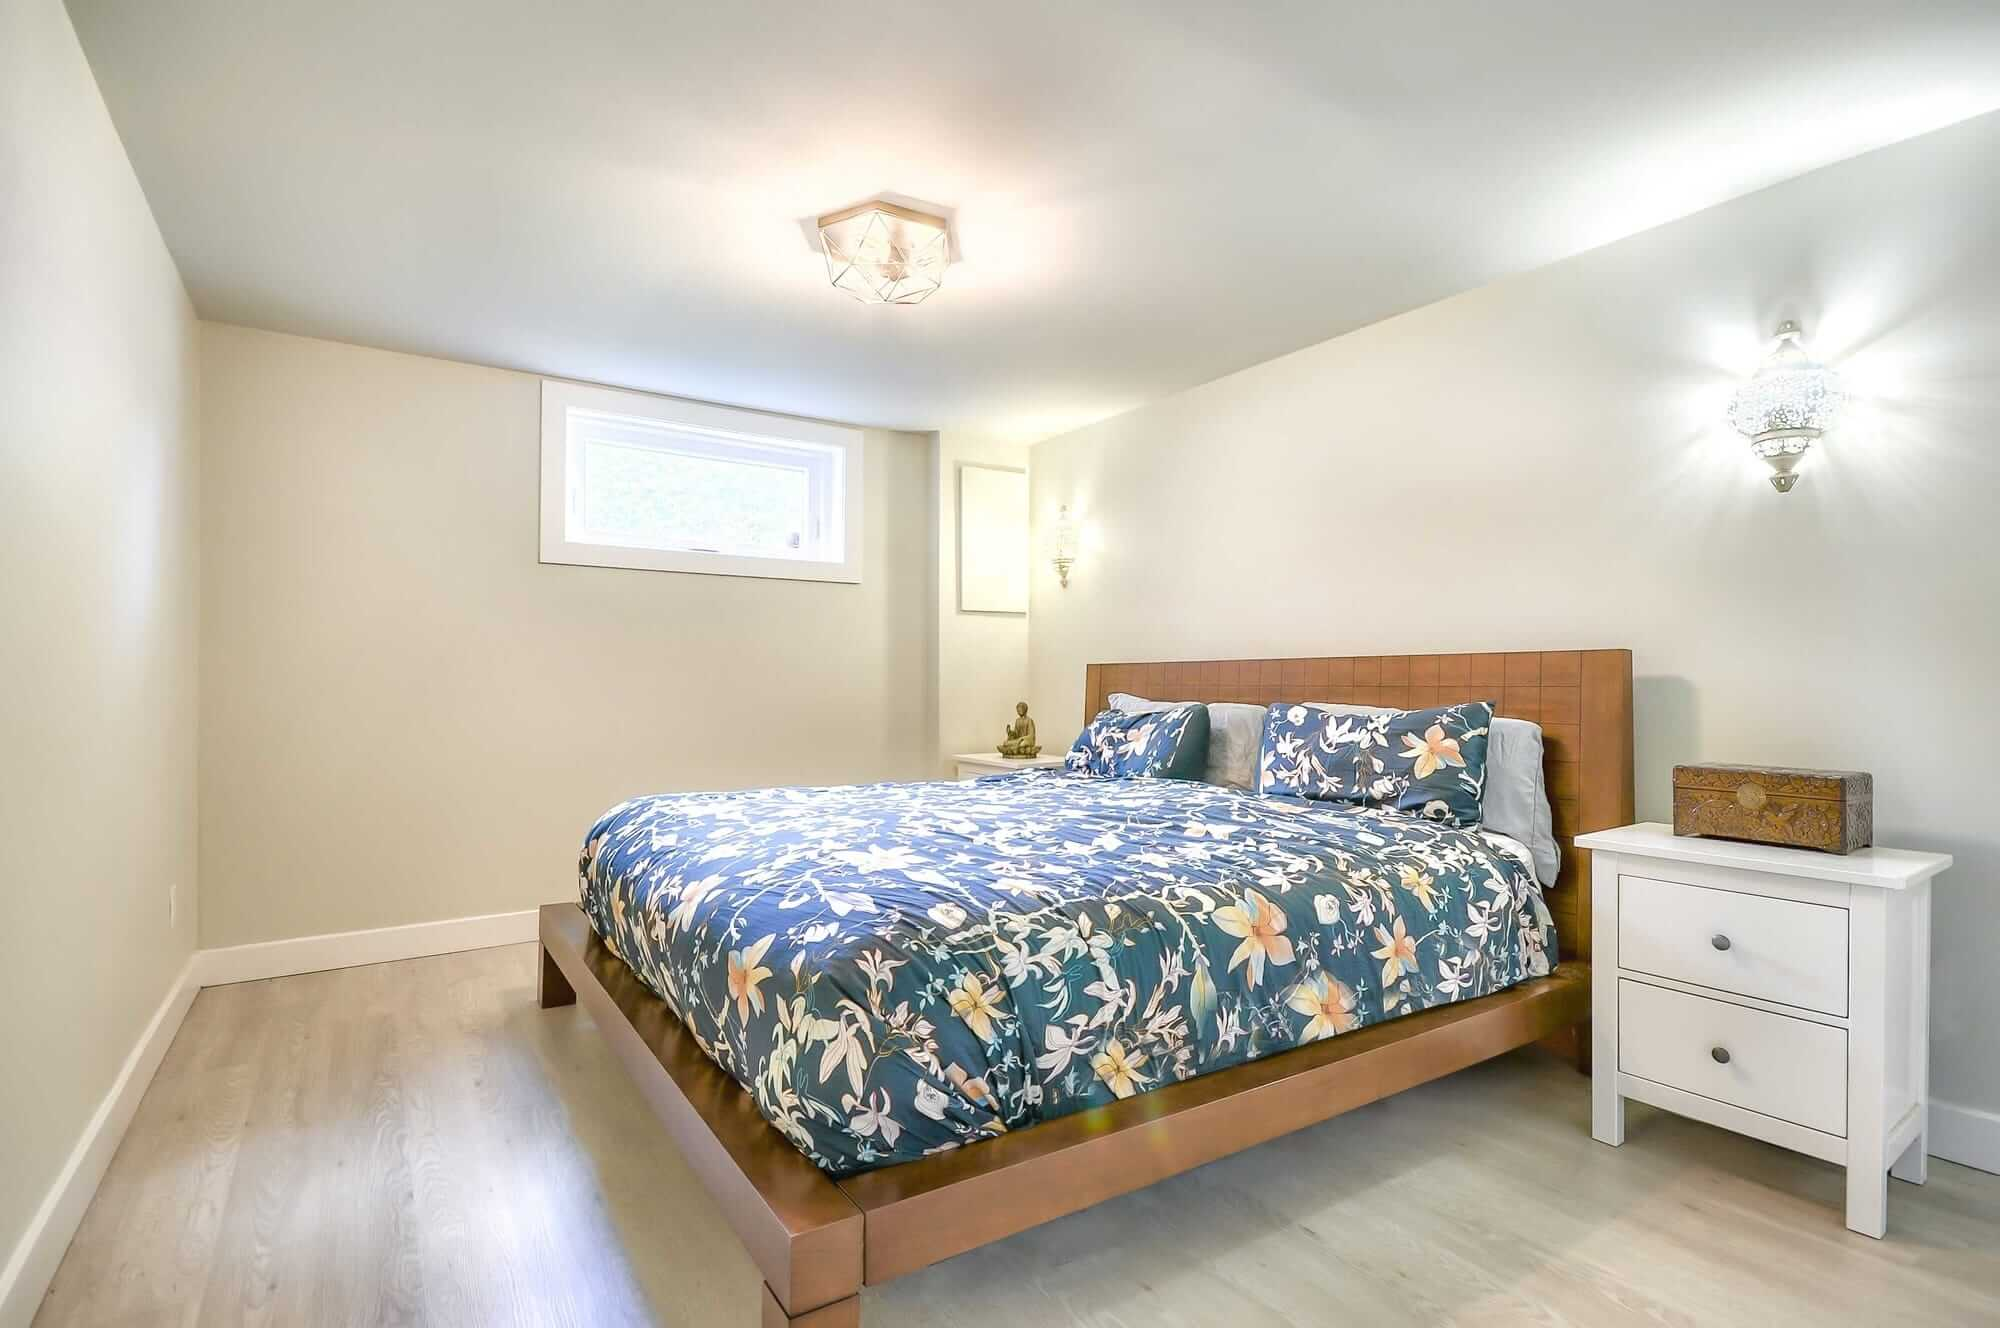 basement bedroom with a wooden bed and a white nightstand